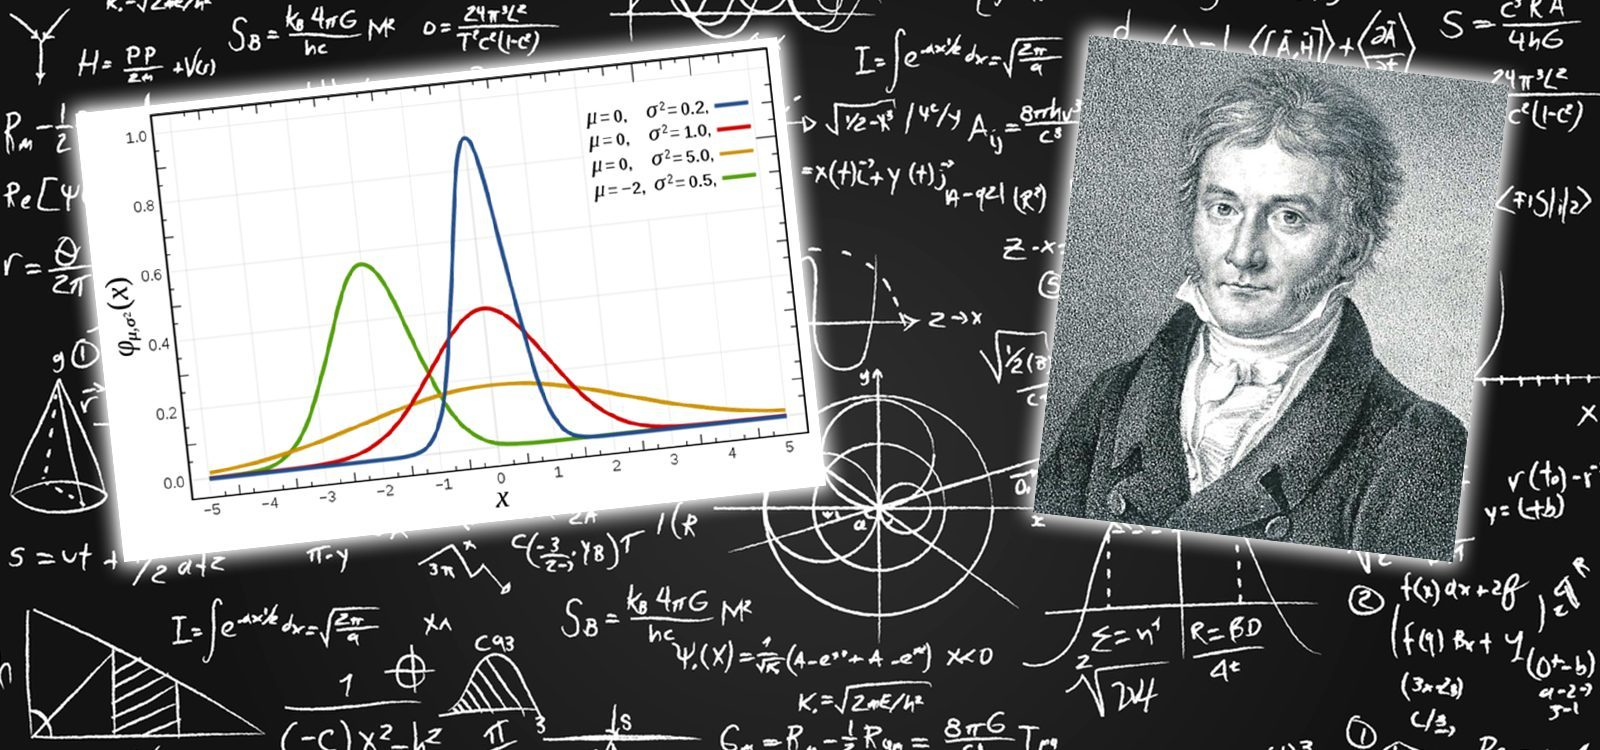 Gauss, Least Squares, and the Missing Planet